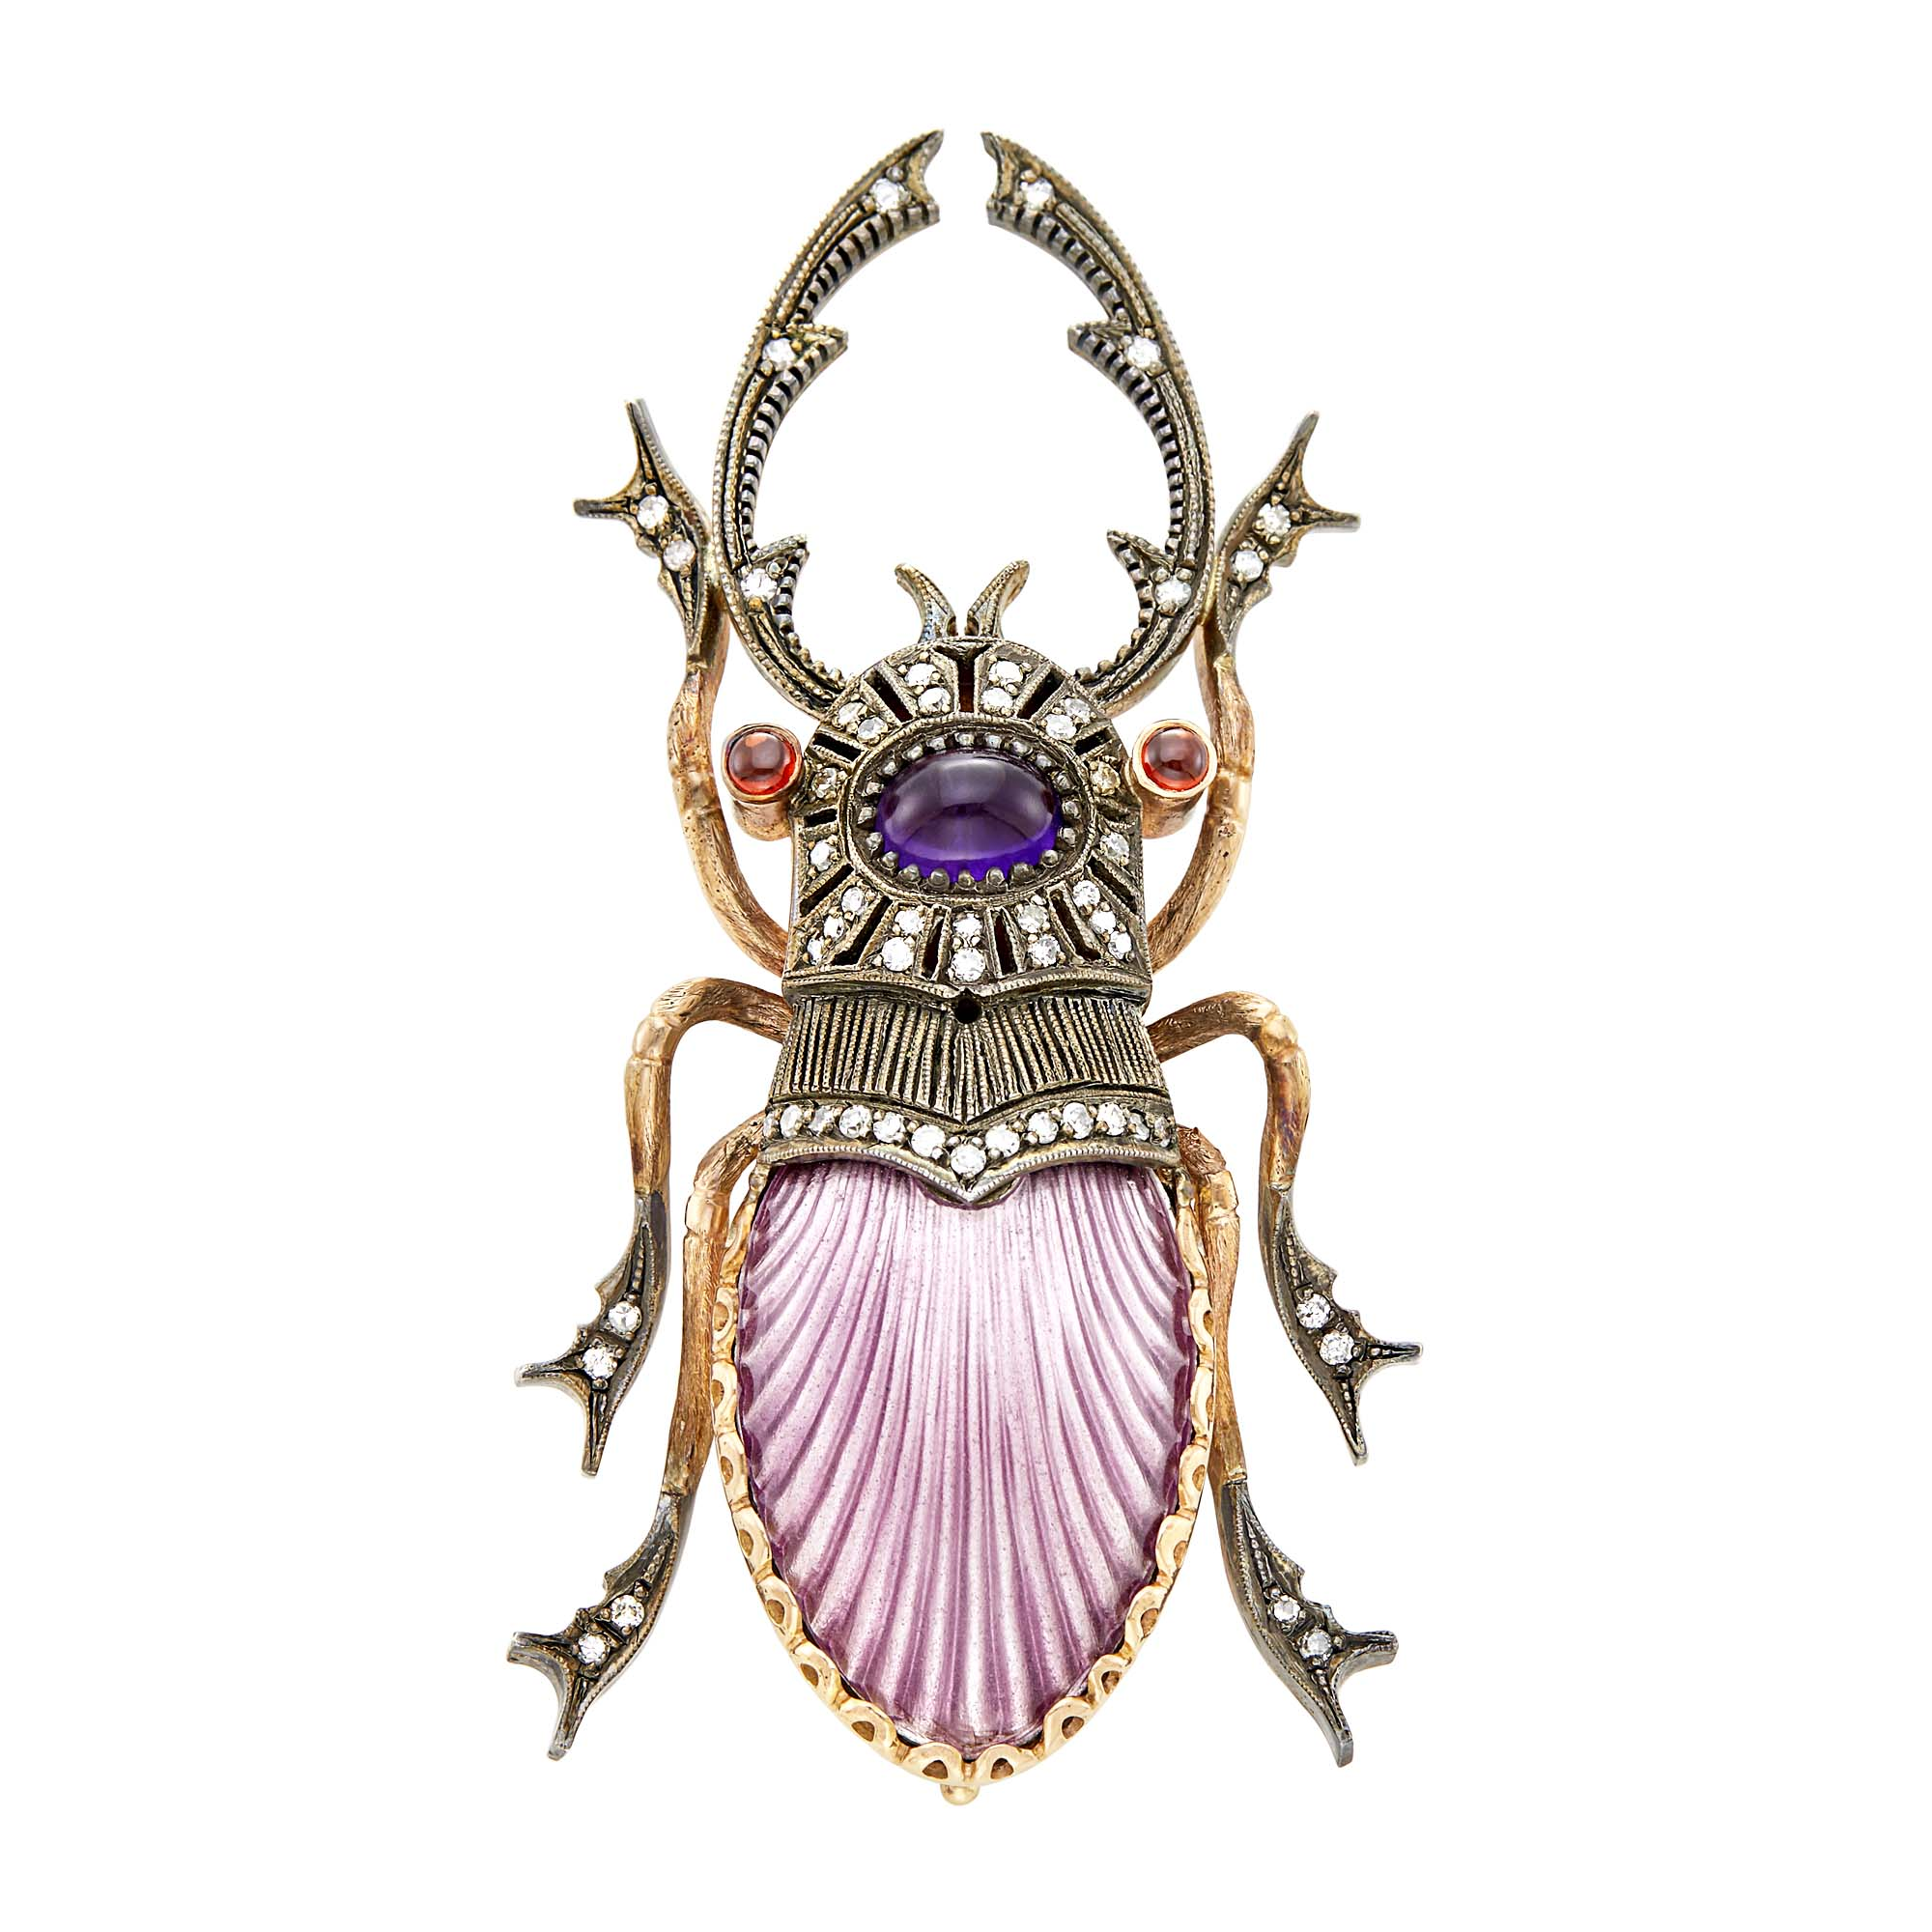 Lot image - Rose Gold, Silver, Guilloché Enamel, Cabochon Gem-Set and Diamond Insect Brooch